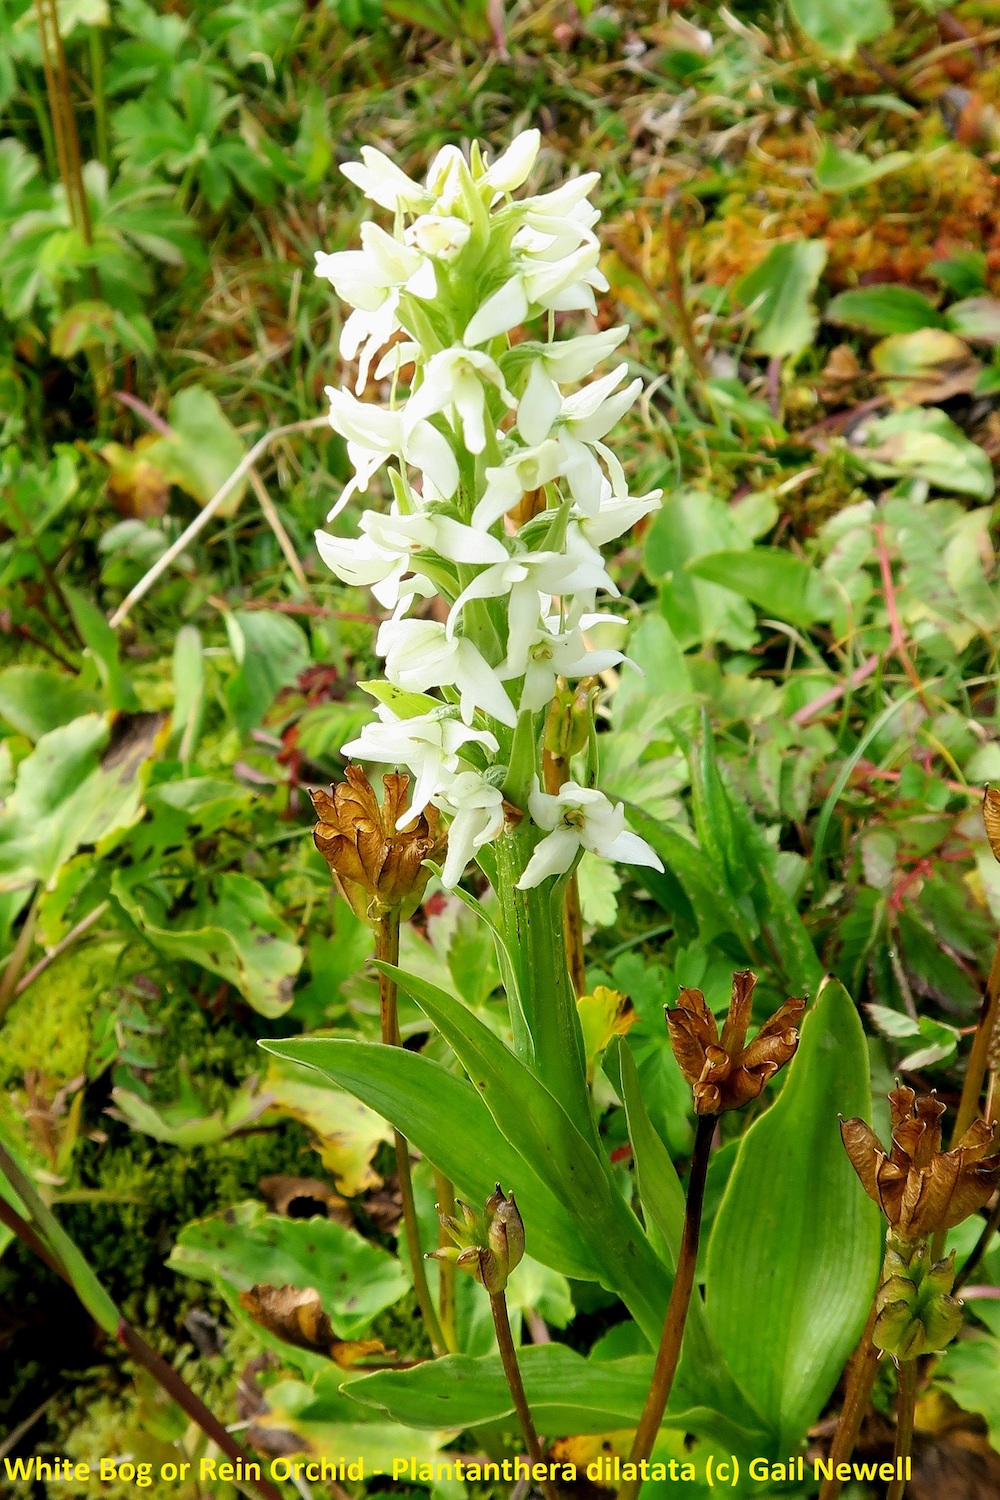 White Bog or Rein Orchid - Plantanthera dilatata © Gail Newell